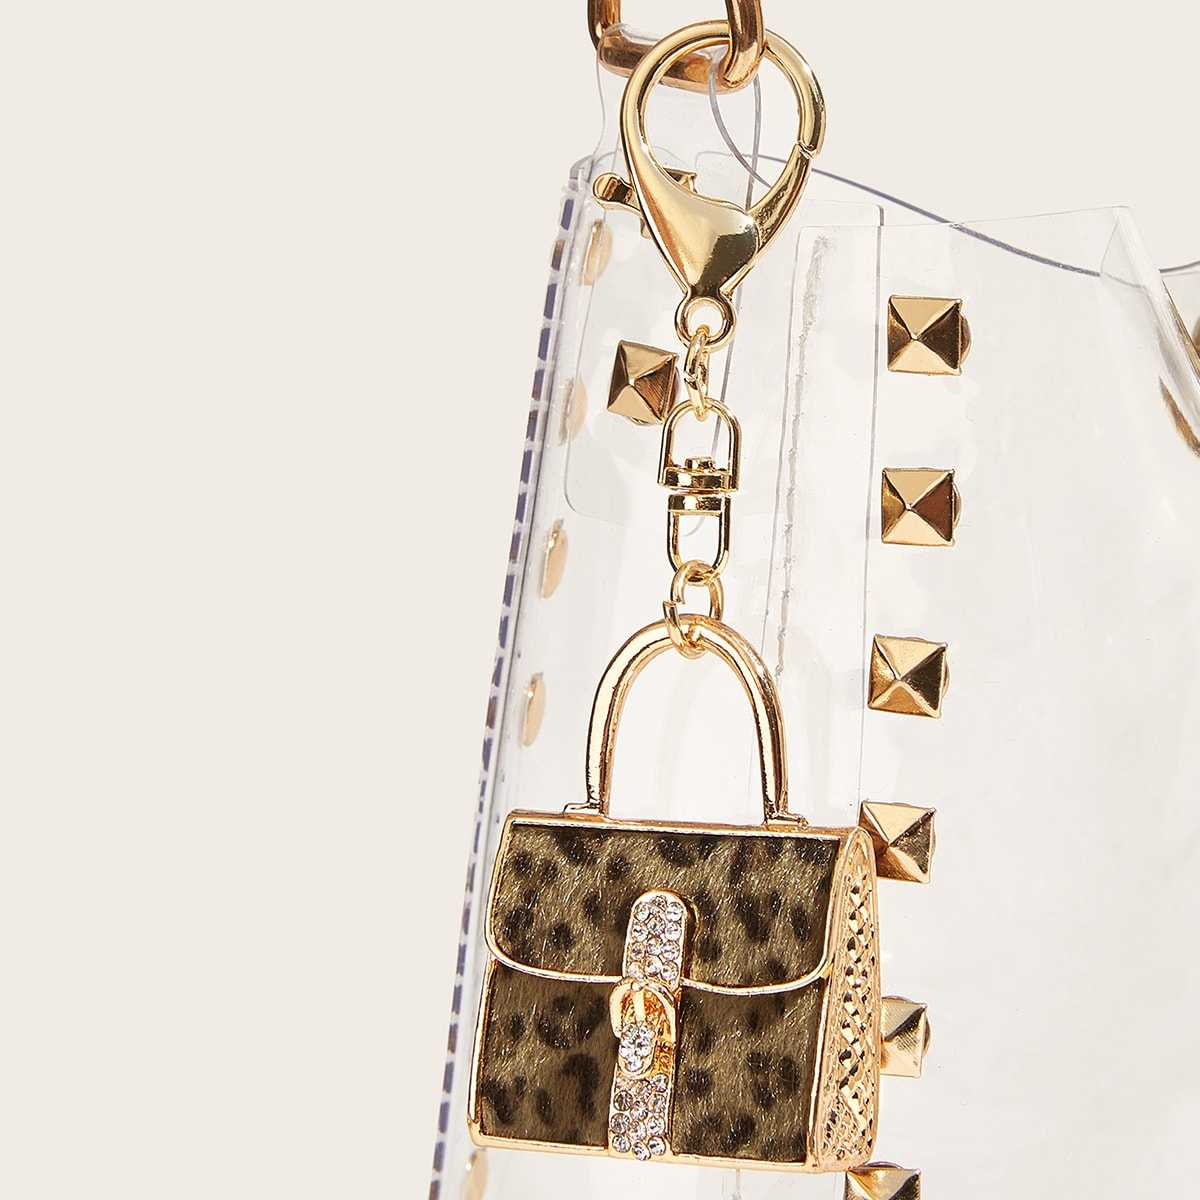 Rhinestone Detail Leopard Satchel Bag Shaped Bag Accessory in Multicolor by ROMWE on GOOFASH